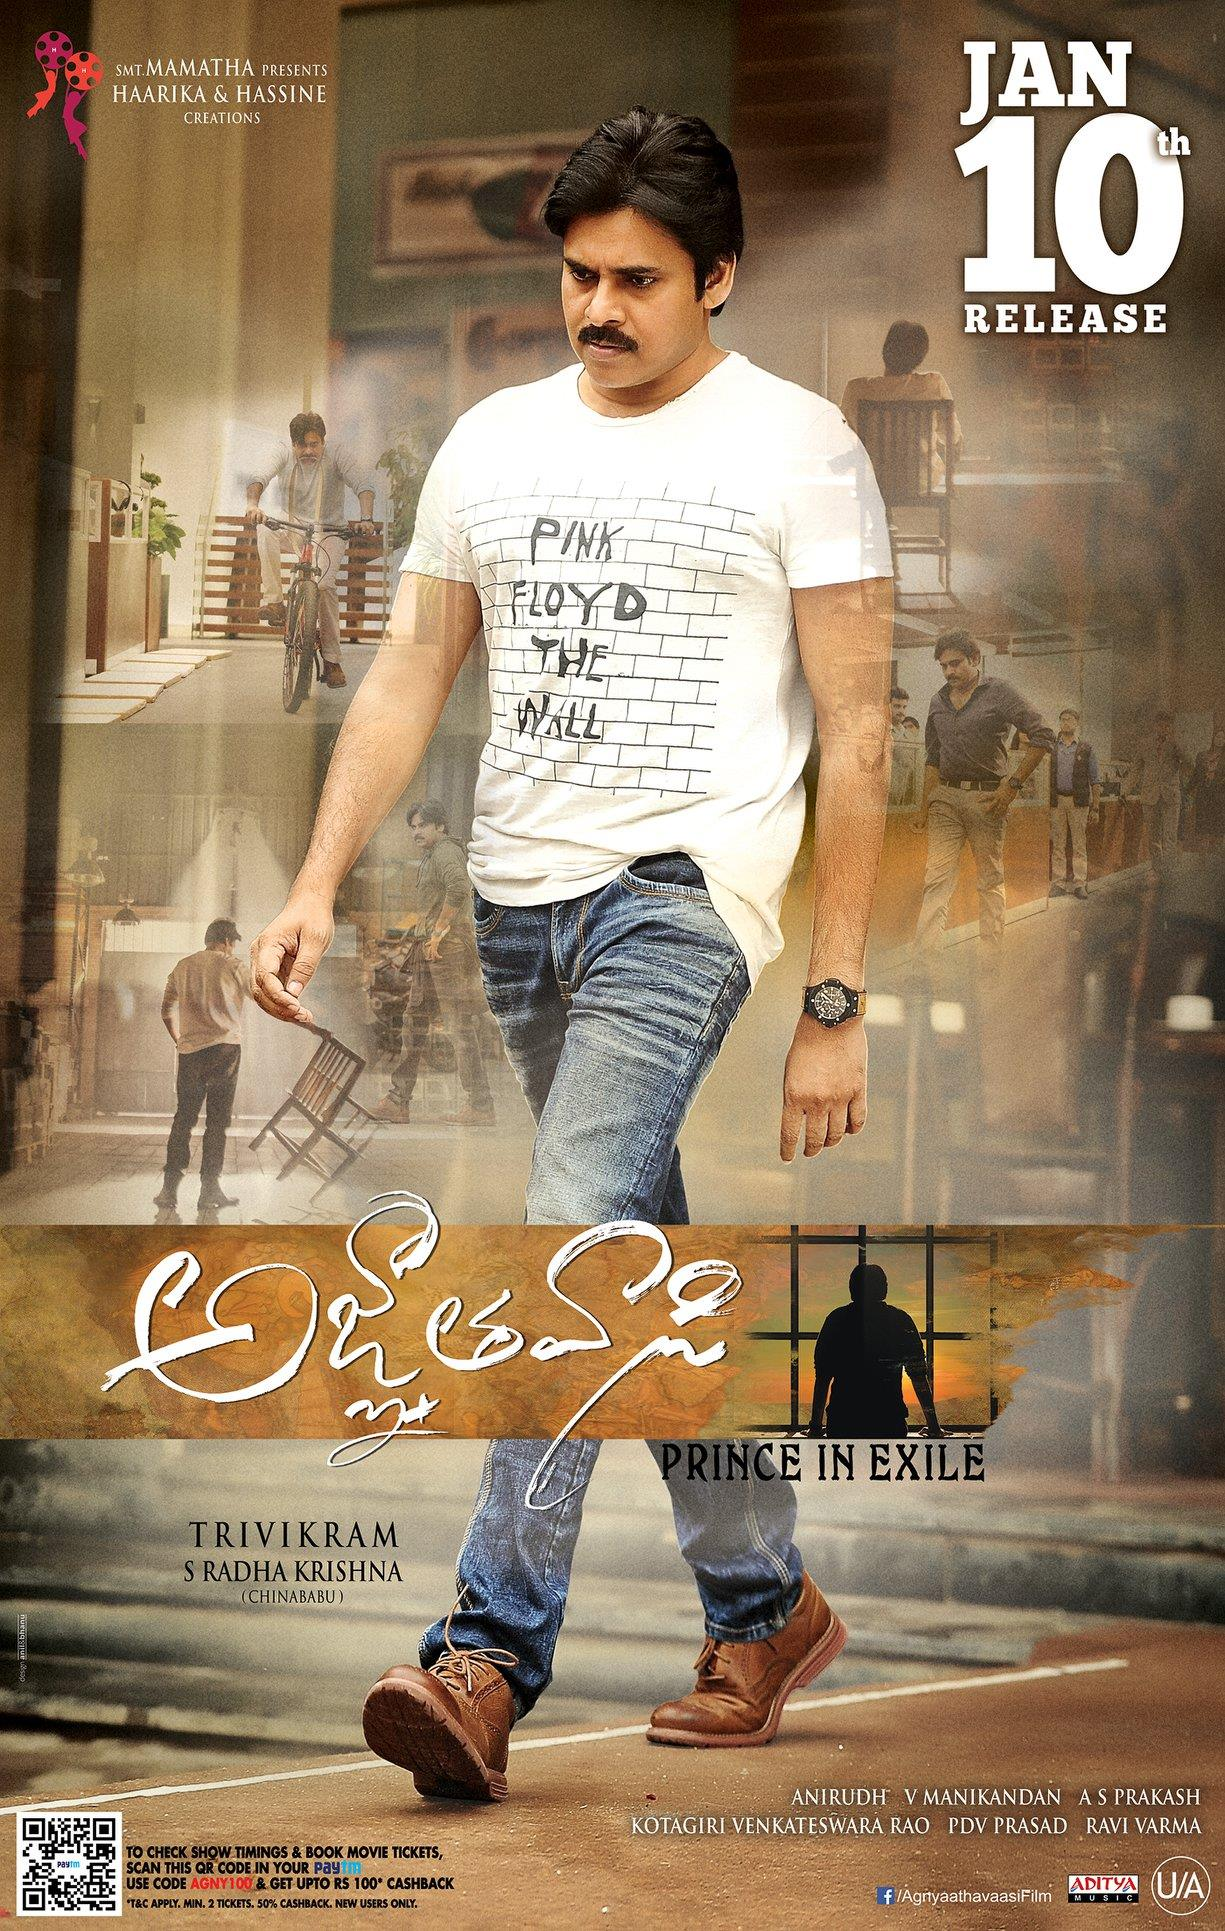 Movie First Look Poster Background